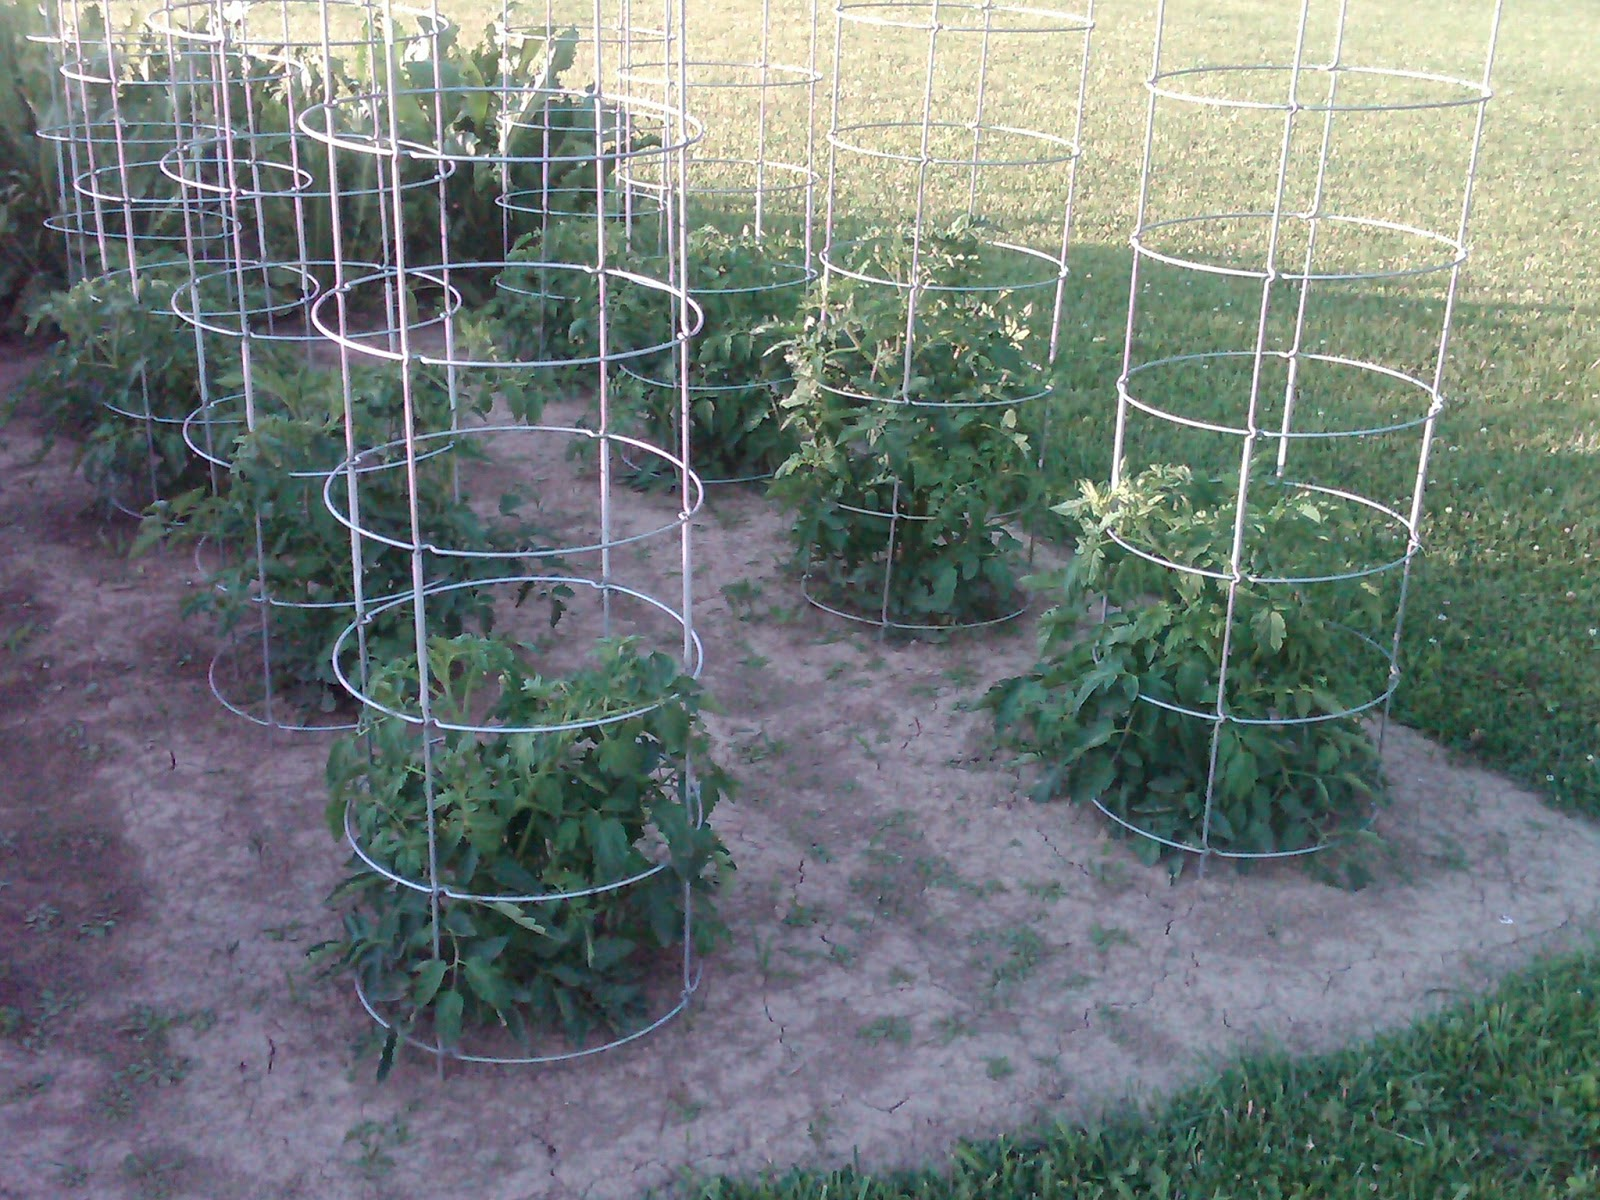 The absolute with out question undeniably best tomato cage is the one pictured above it is solid collapsible and simply the only tomato cage that is